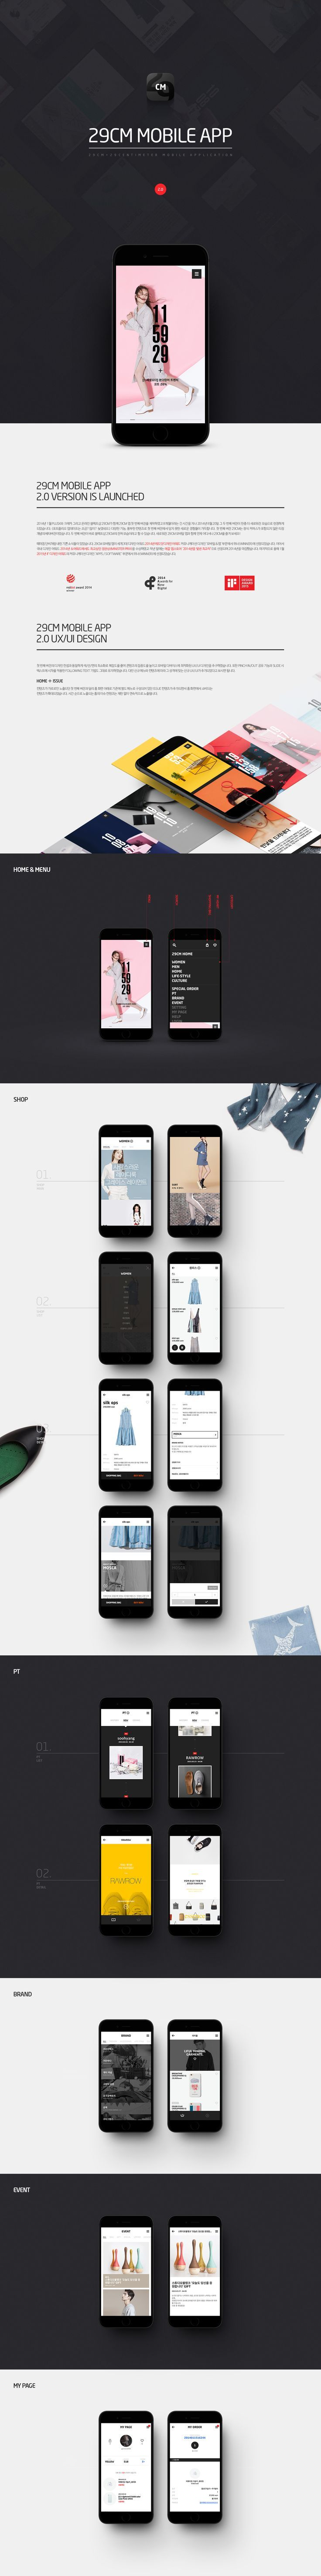 29CM MOBILE APP 2.0 VERSION IS LAUNCHED 29CM mobile application was coproduced by Plus X, CRECA and the online select shop 29CM at January 2014, and after 8 months 2nd version was launched at August 20, 2014 with new looks. (we are running a little bit …